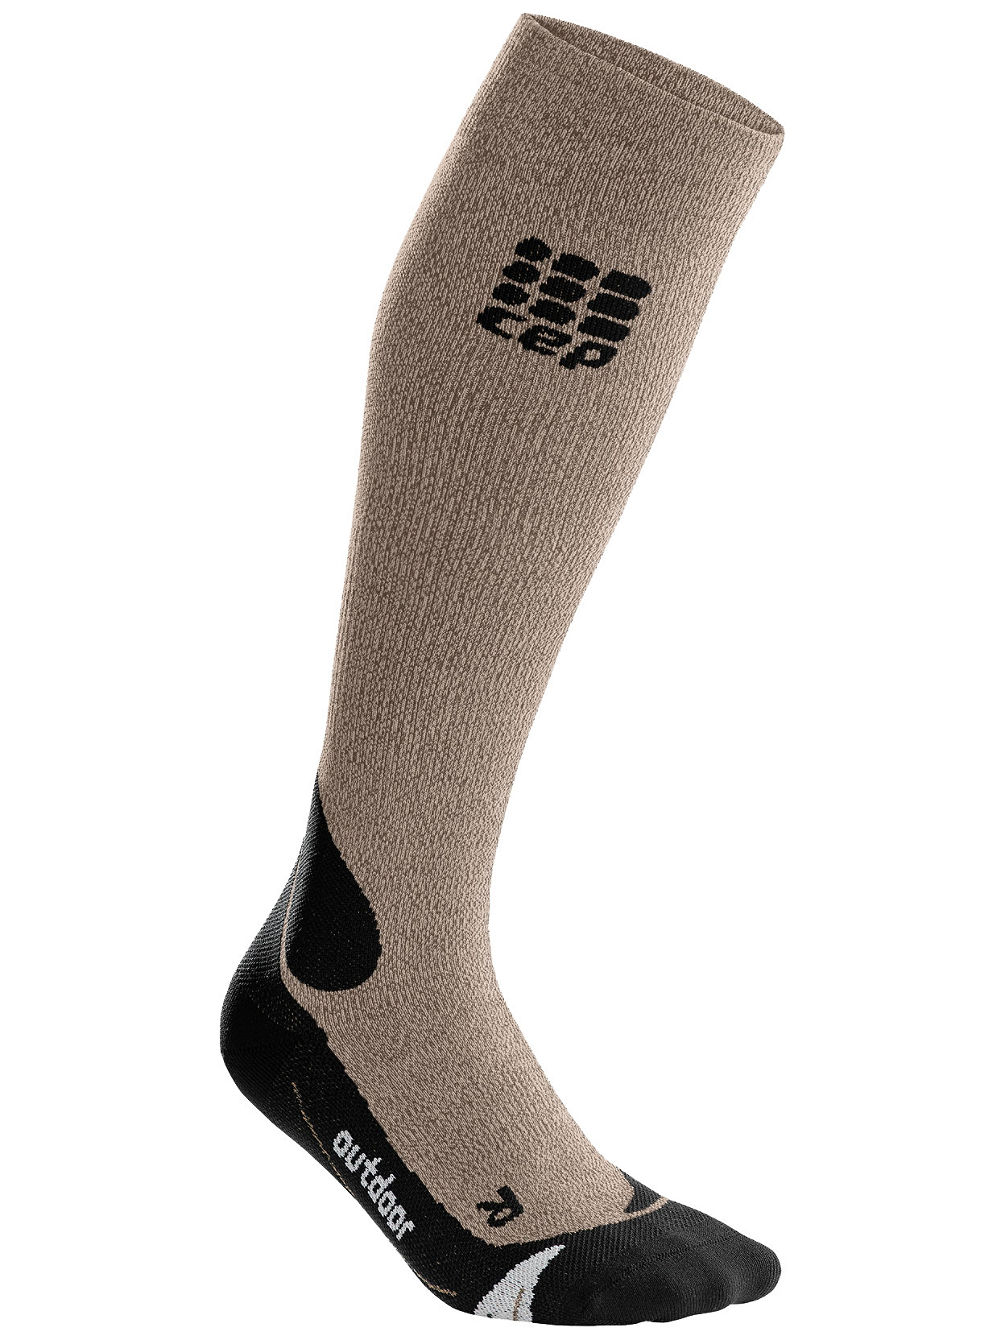 Outdoor Merino Socks